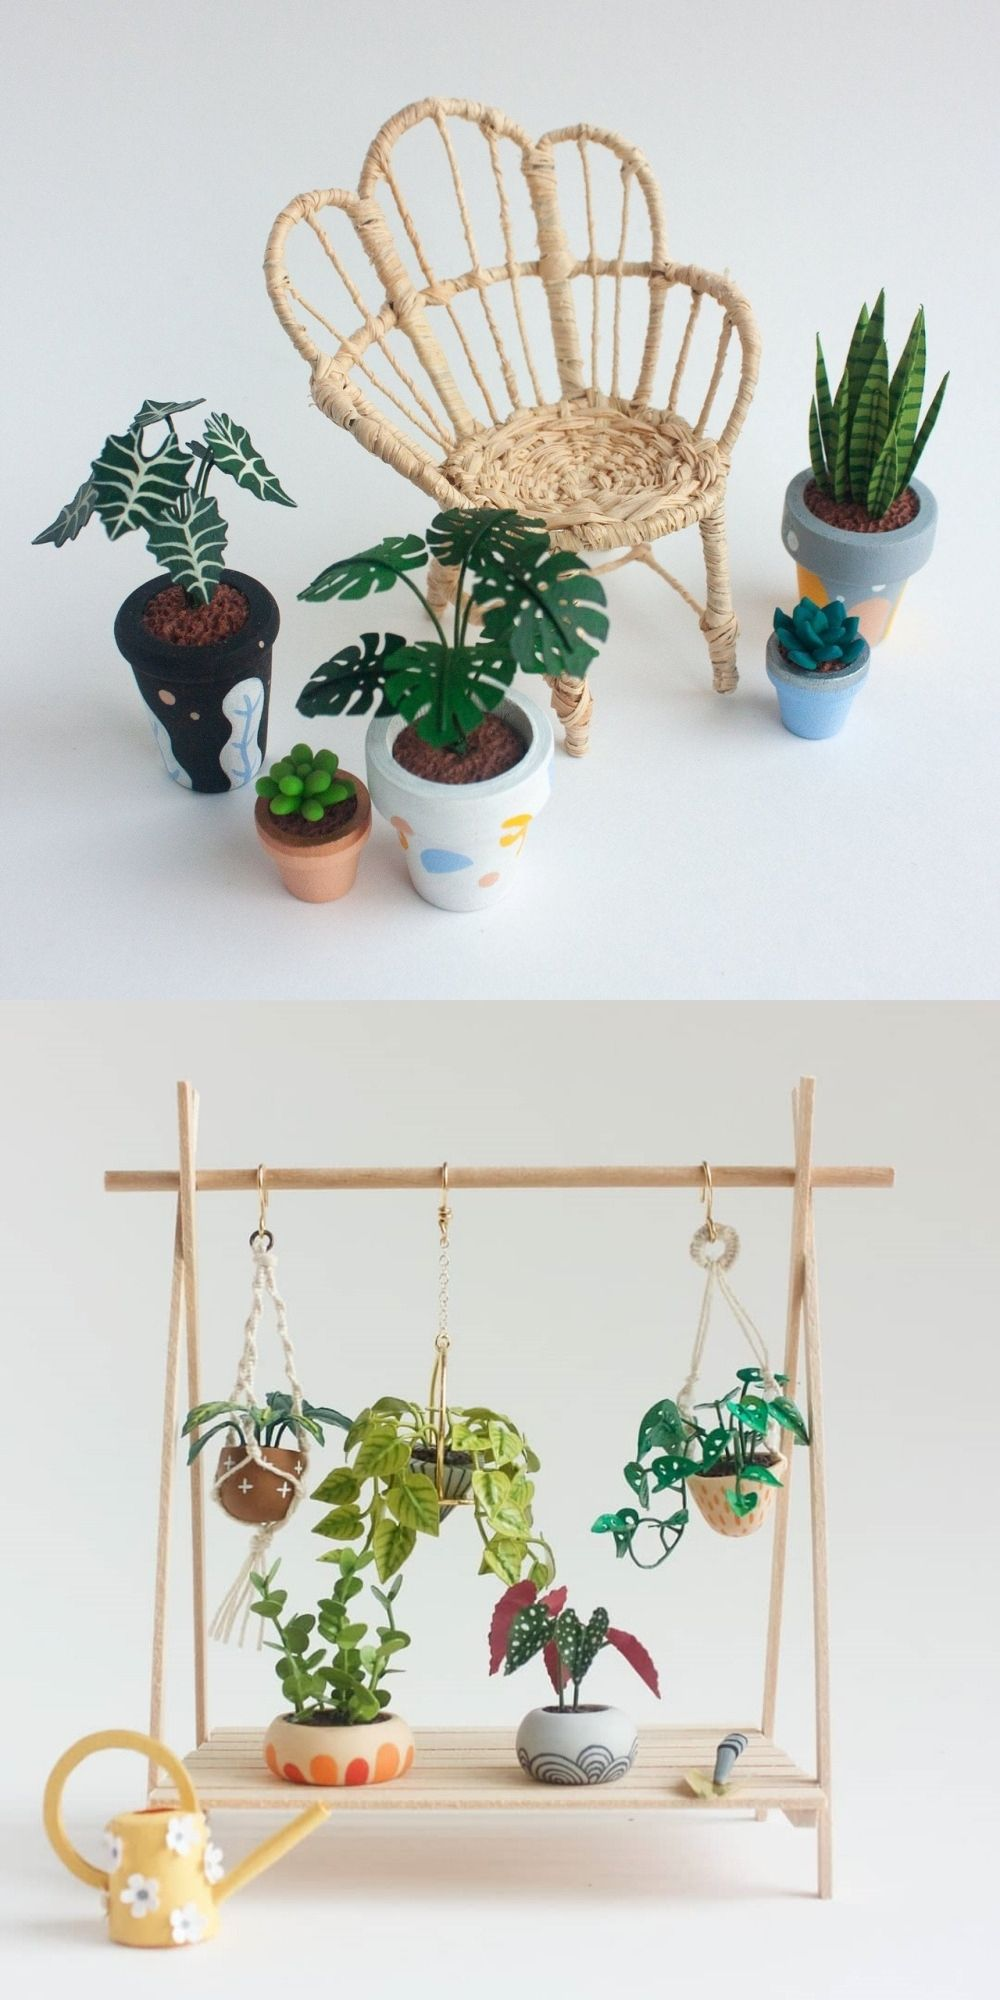 Etsy Shop Feature on So Super Awesome #etsy #miniatures #dollhouse #plants #papercraft #paperart #paperplants #crafts #handmade #miniaturedollhouse